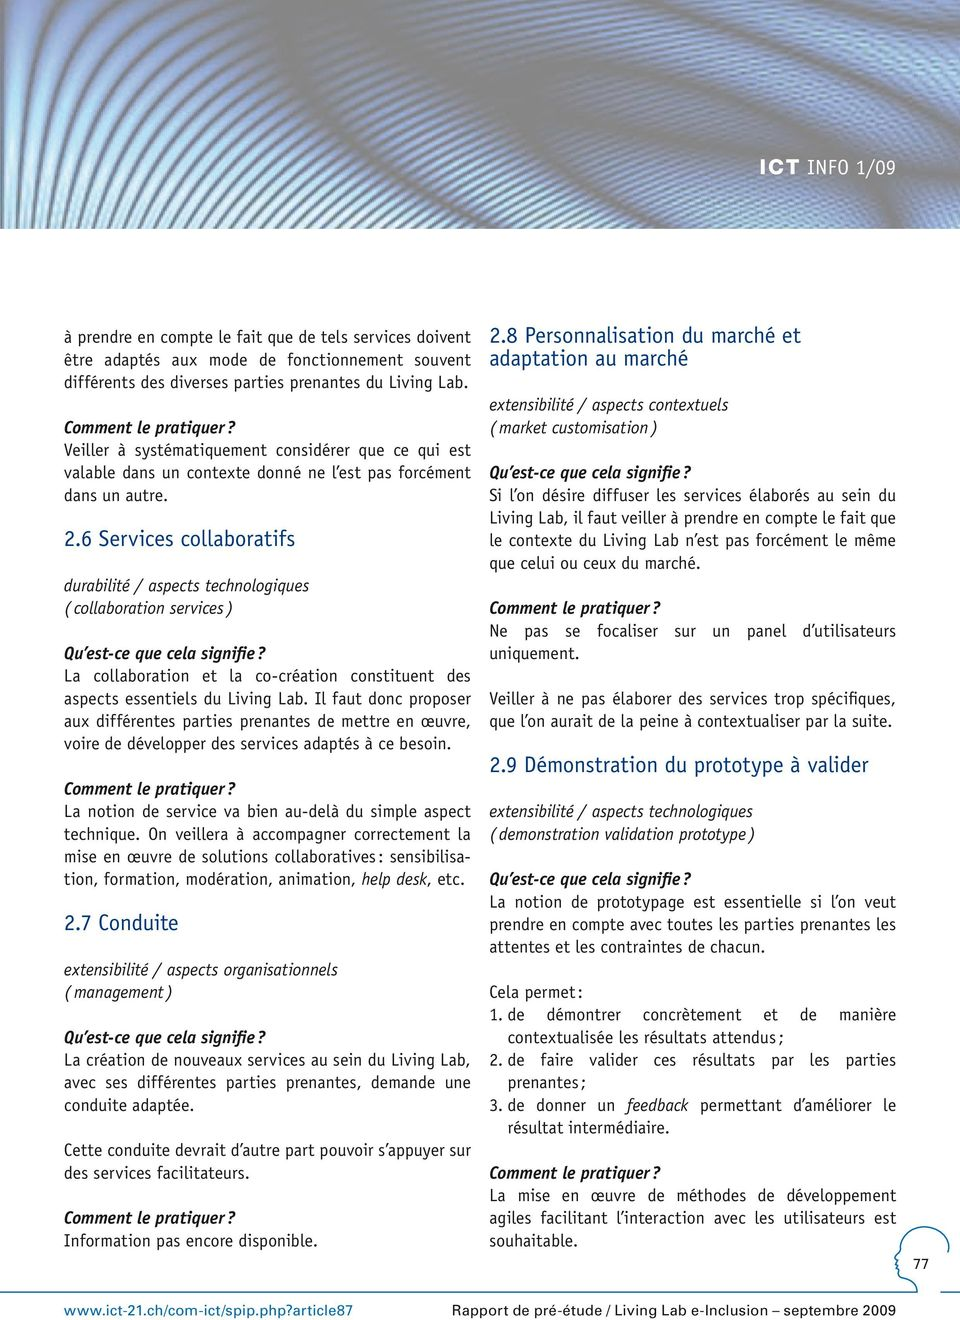 6 Services collaboratifs durabilité / aspects technologiques ( collaboration services ) La collaboration et la co-création constituent des aspects essentiels du Living Lab.